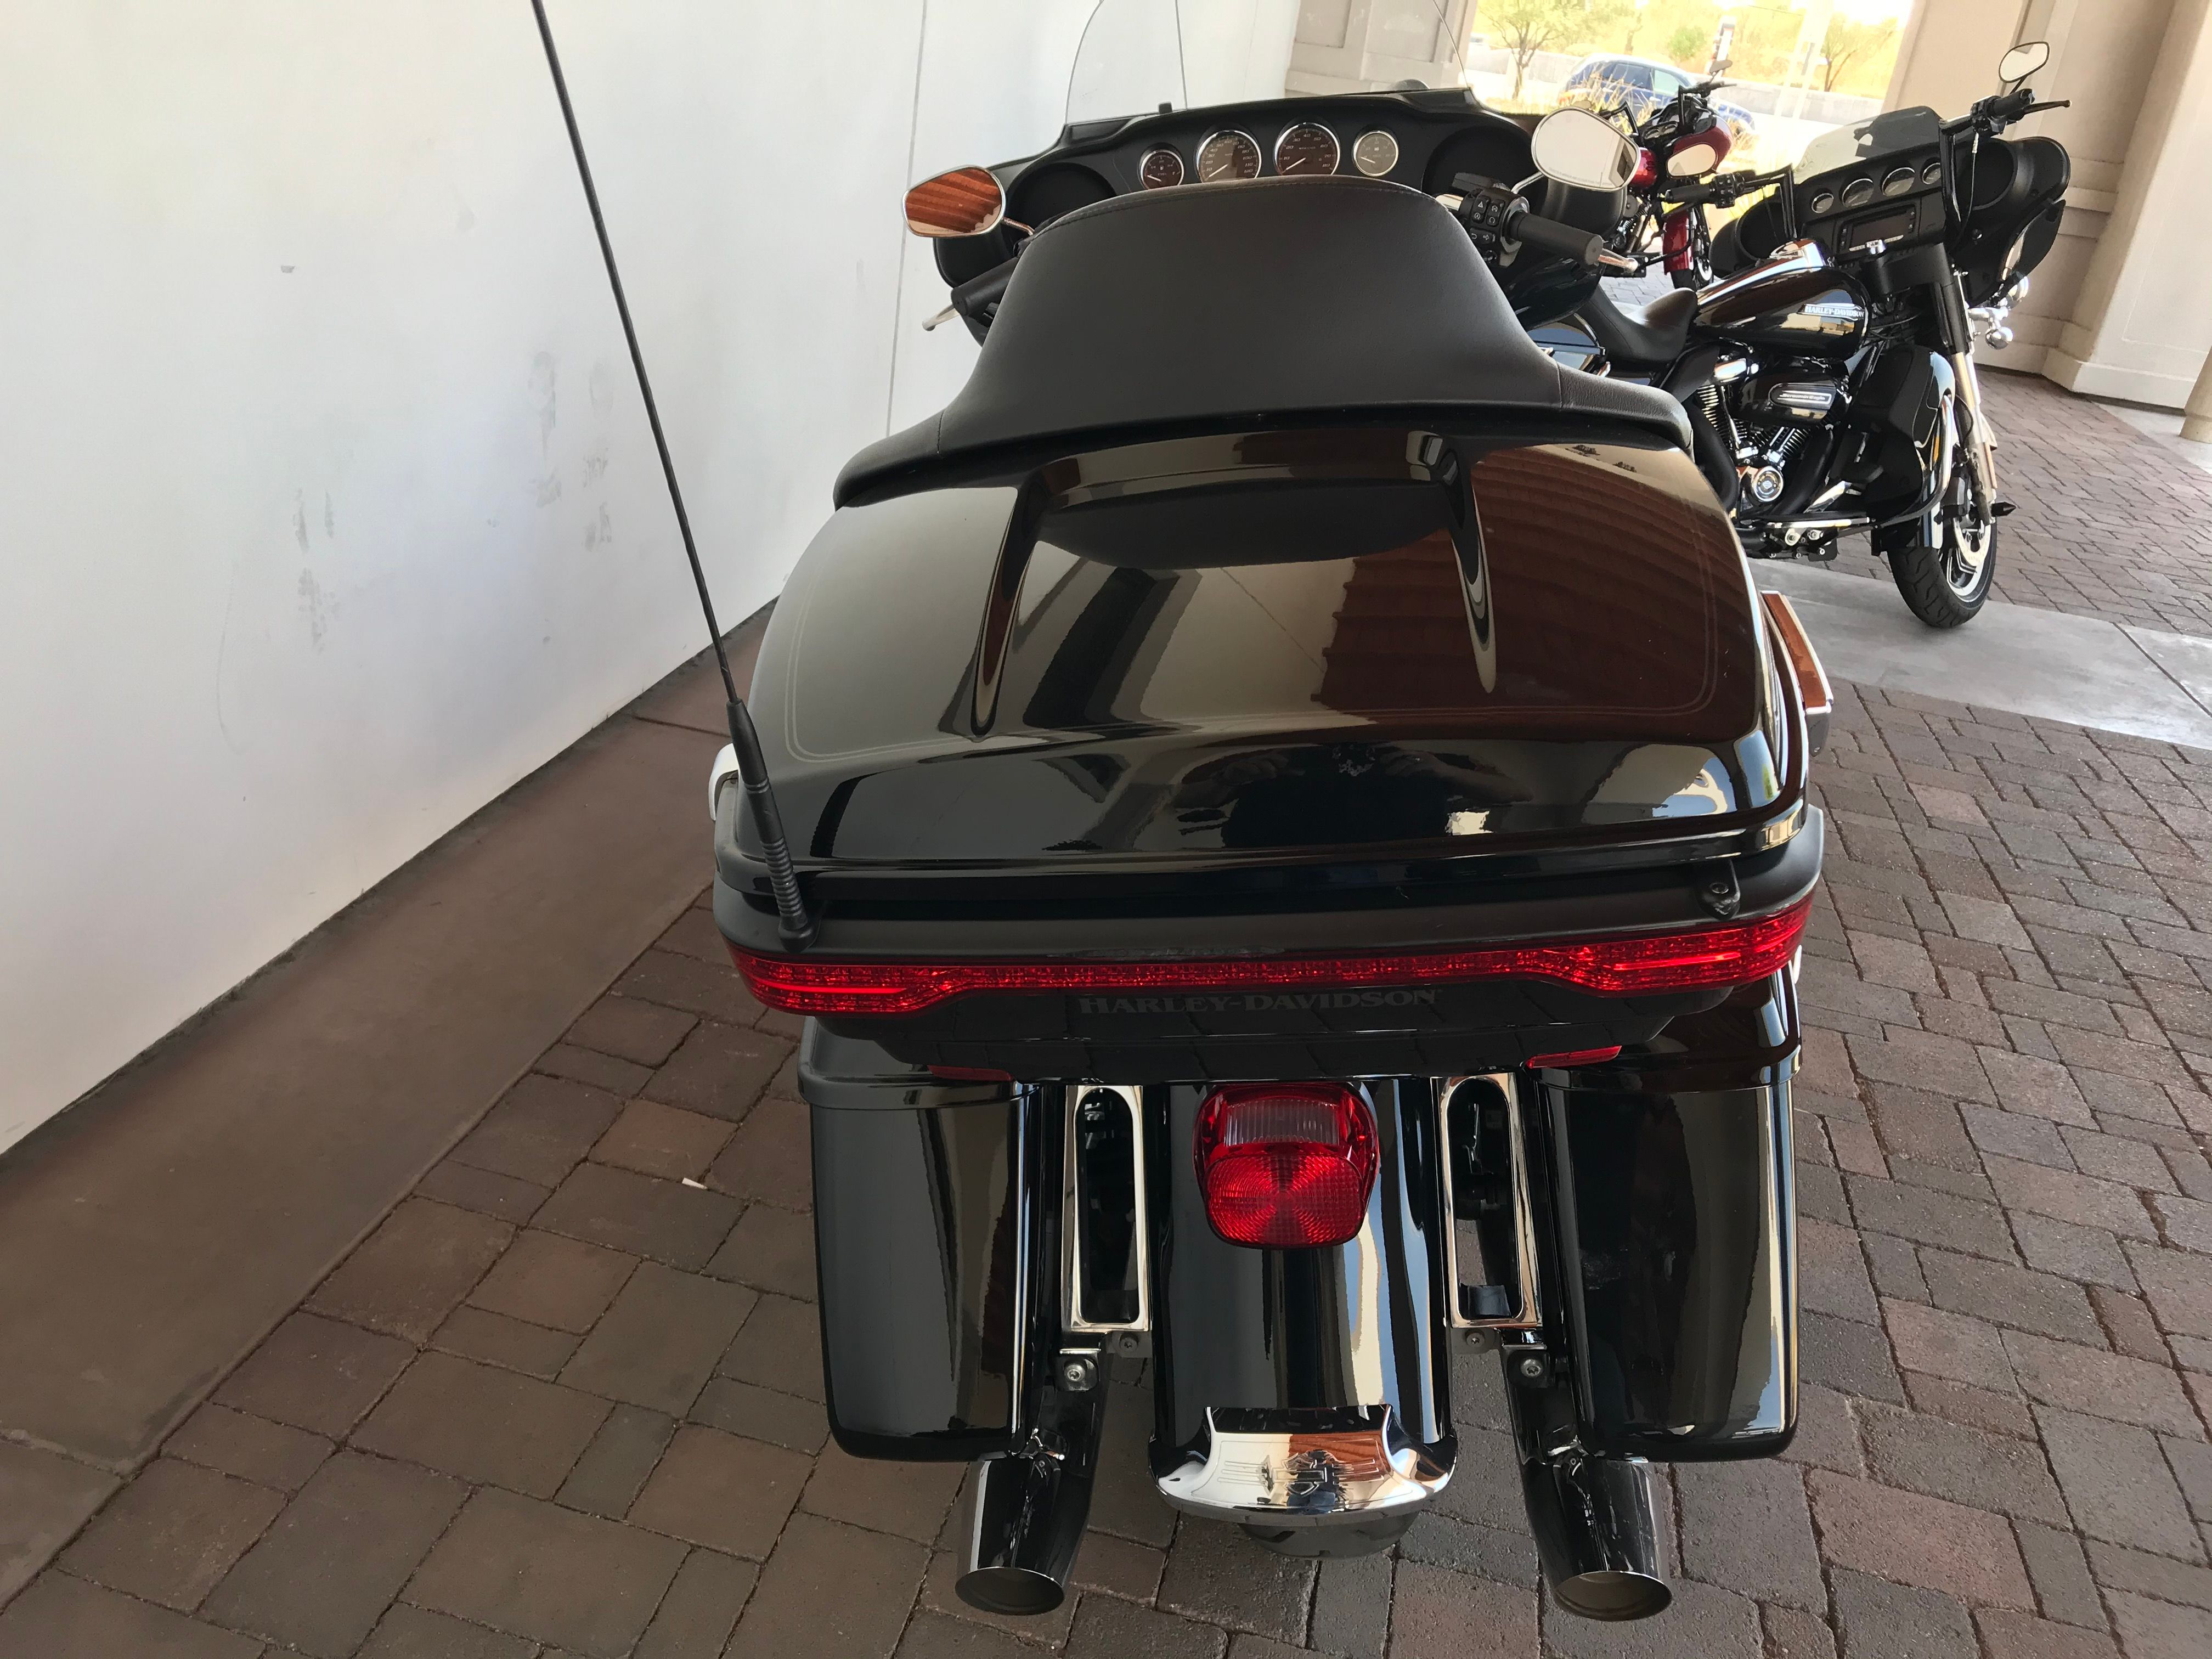 Pre-Owned 2019 Harley-Davidson Electra Glide Ultra Classic